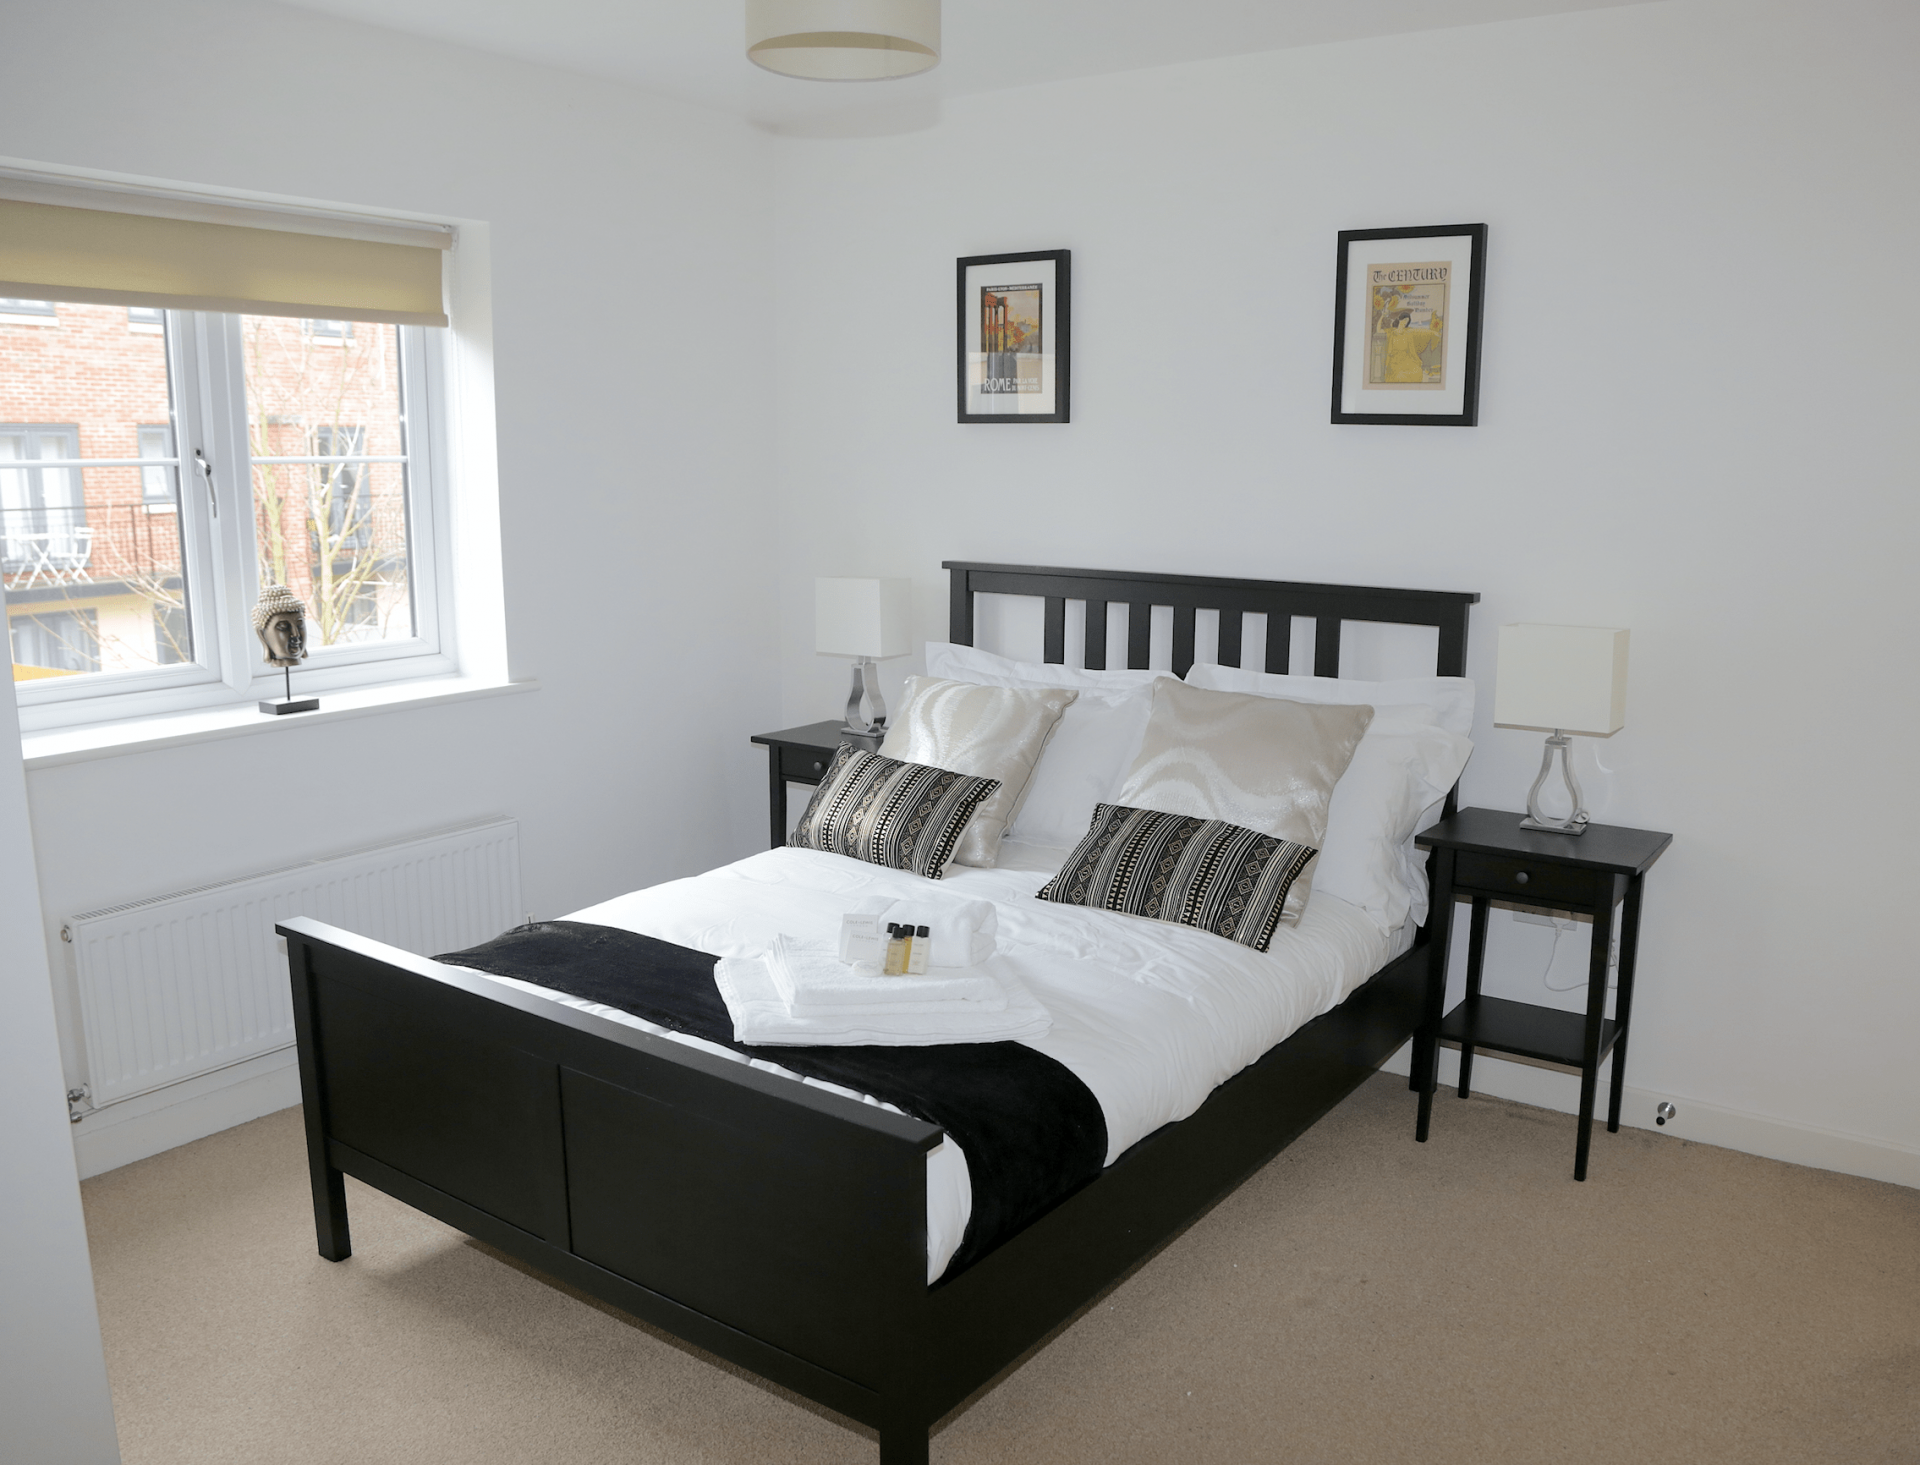 Bedroom at Gateway Apartment Nottingham, Wilford, Nottingham - Citybase Apartments